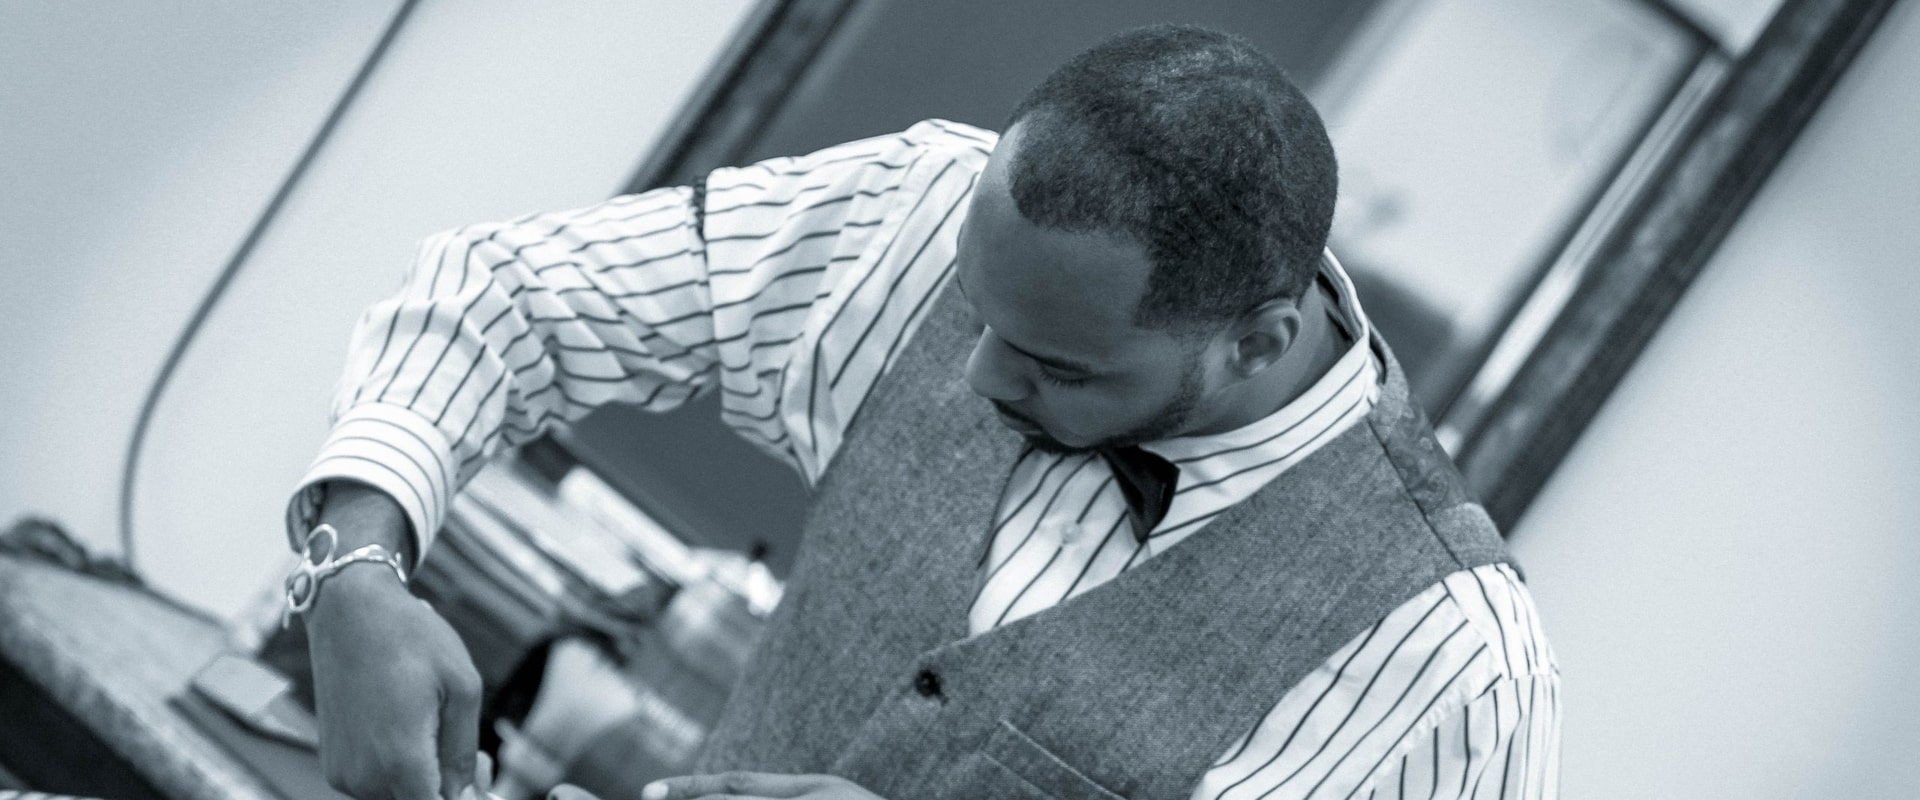 Haircuts, Shaves, Trims & More